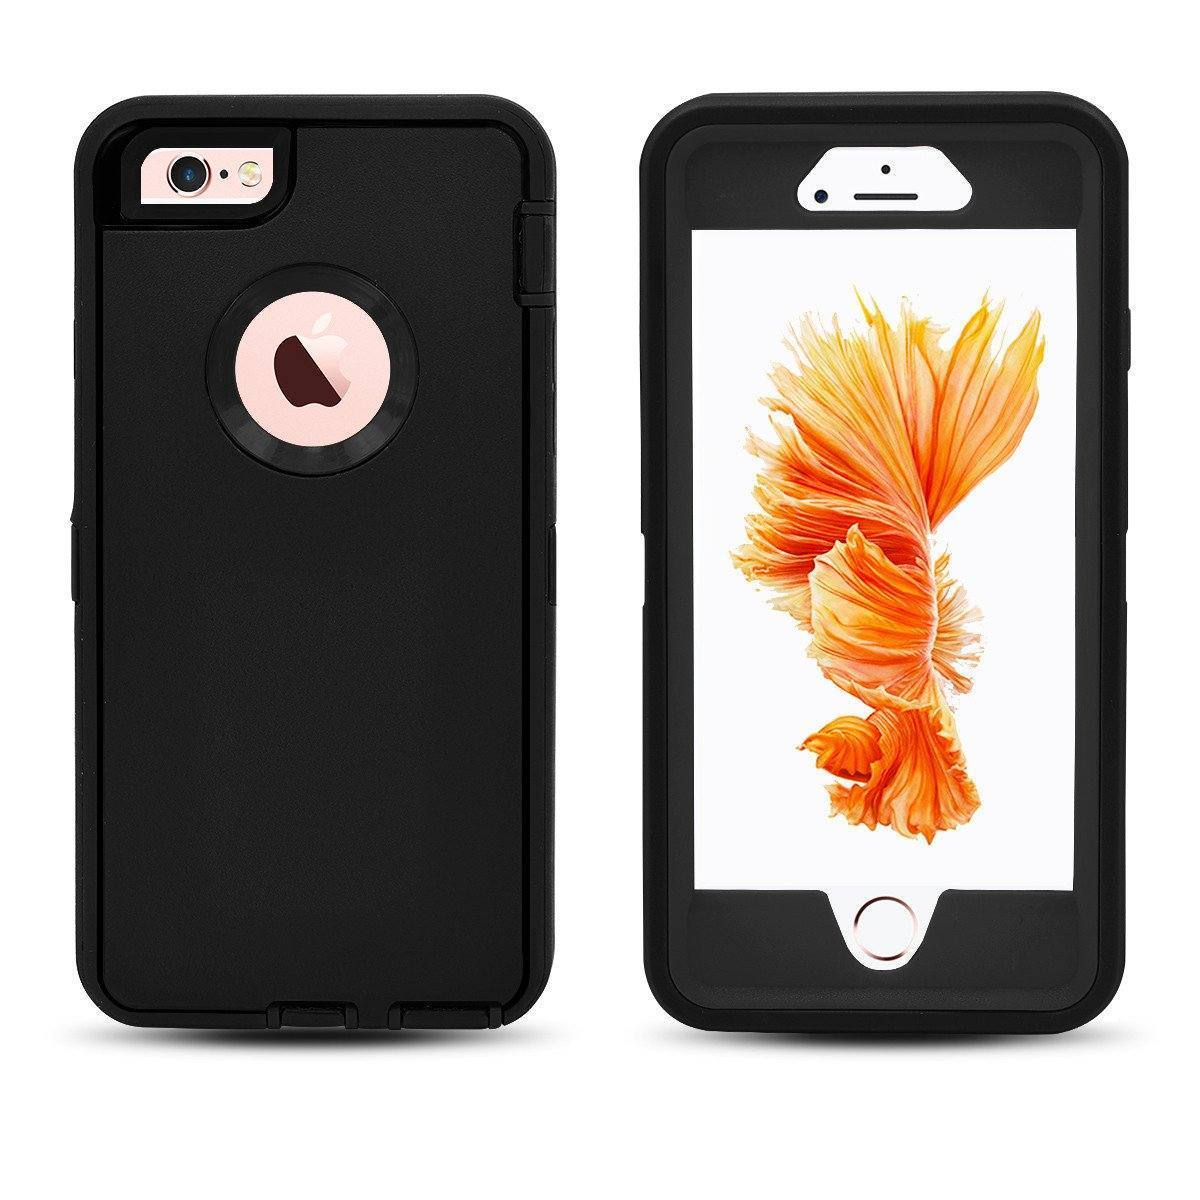 DualPro Protector Case for iPhone 6 - Black